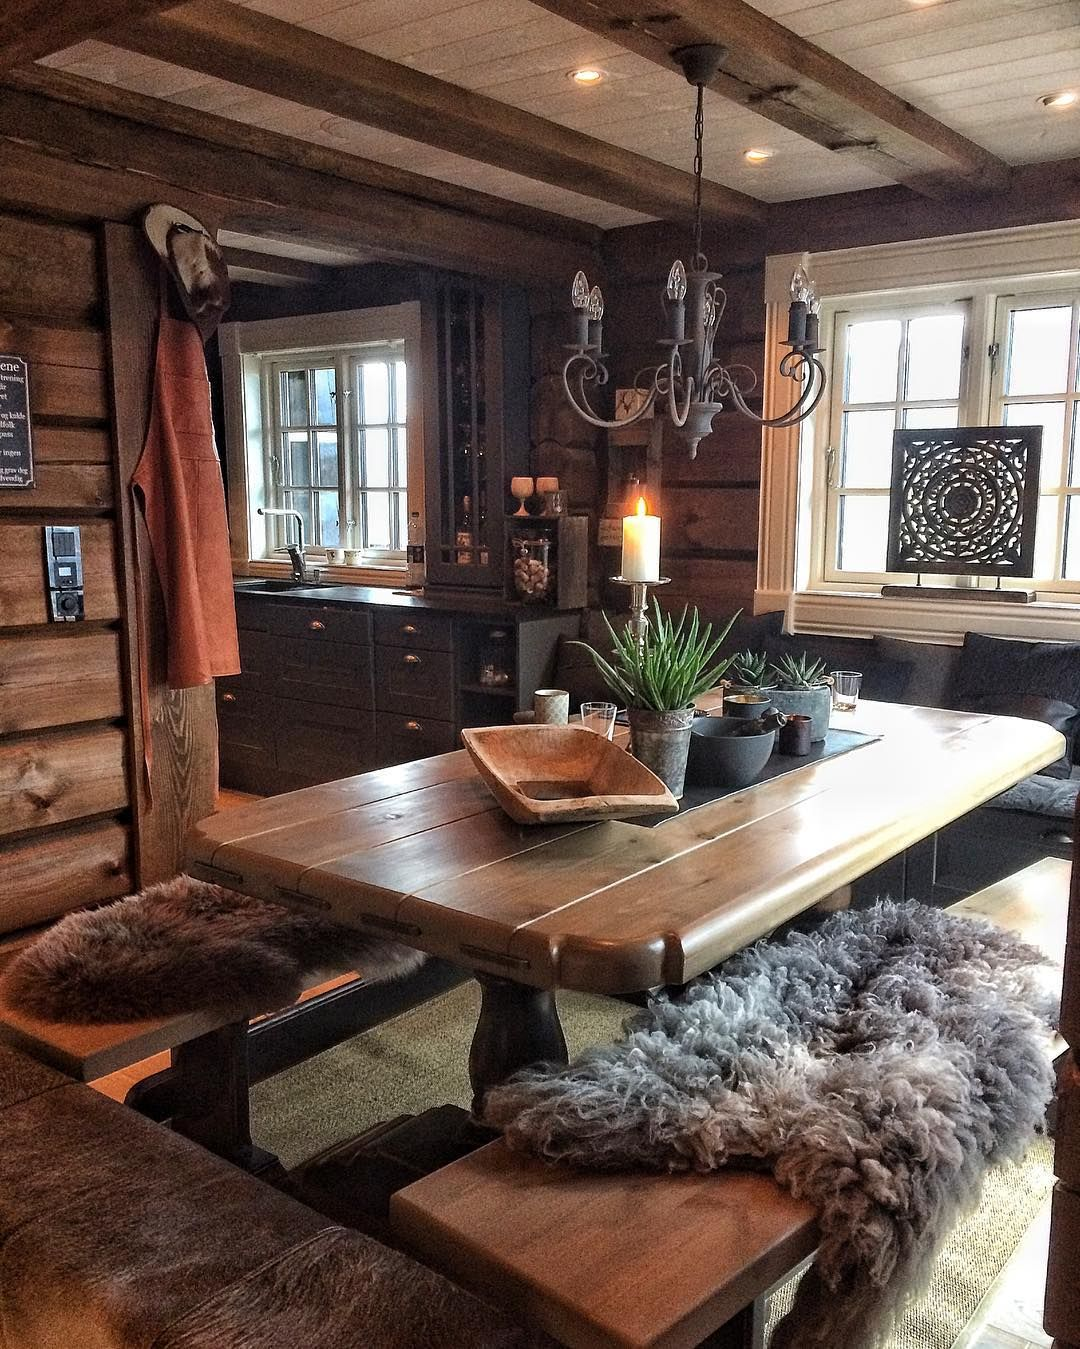 ∘⚜∘Rustic Log Homes∘⚜∘ - Pinterest: Crackpot Baby | Rincones ...